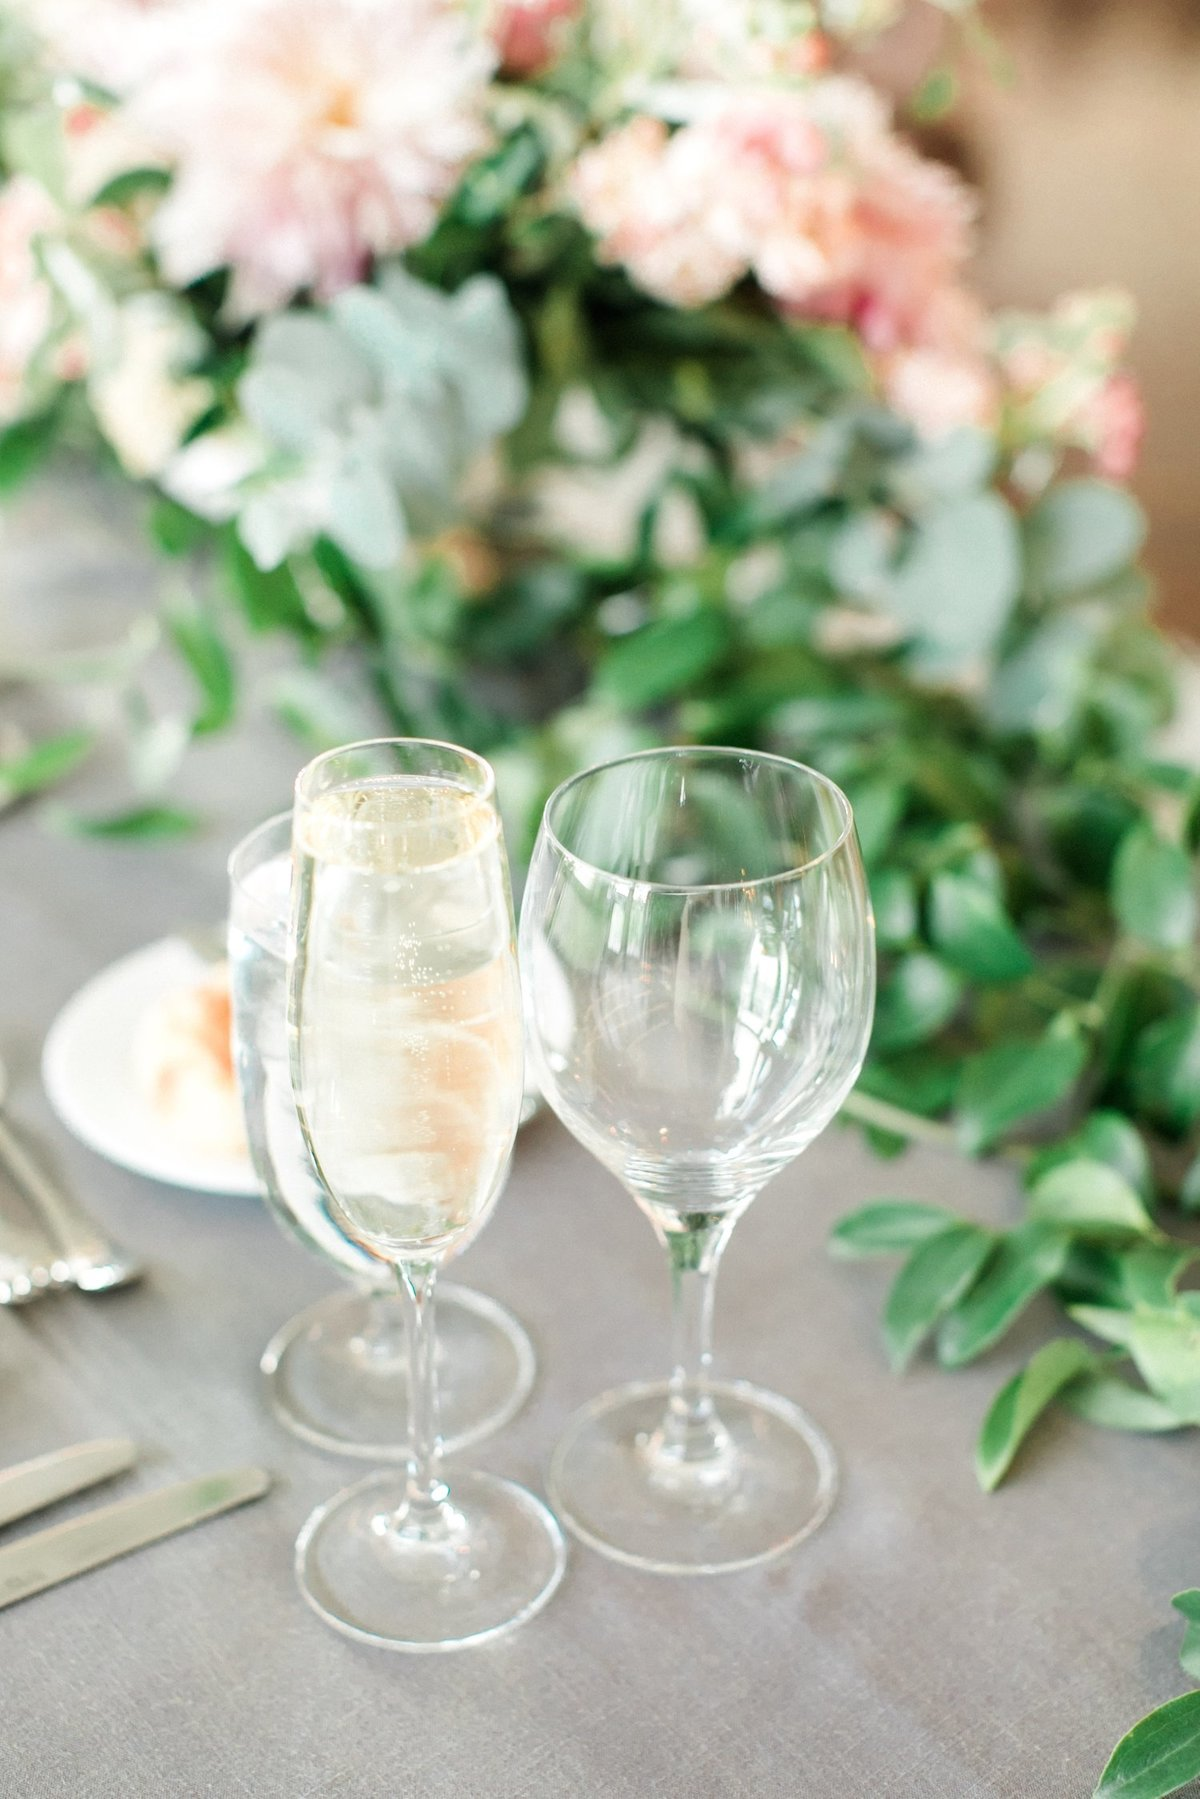 virginia_english garden wedding__2475